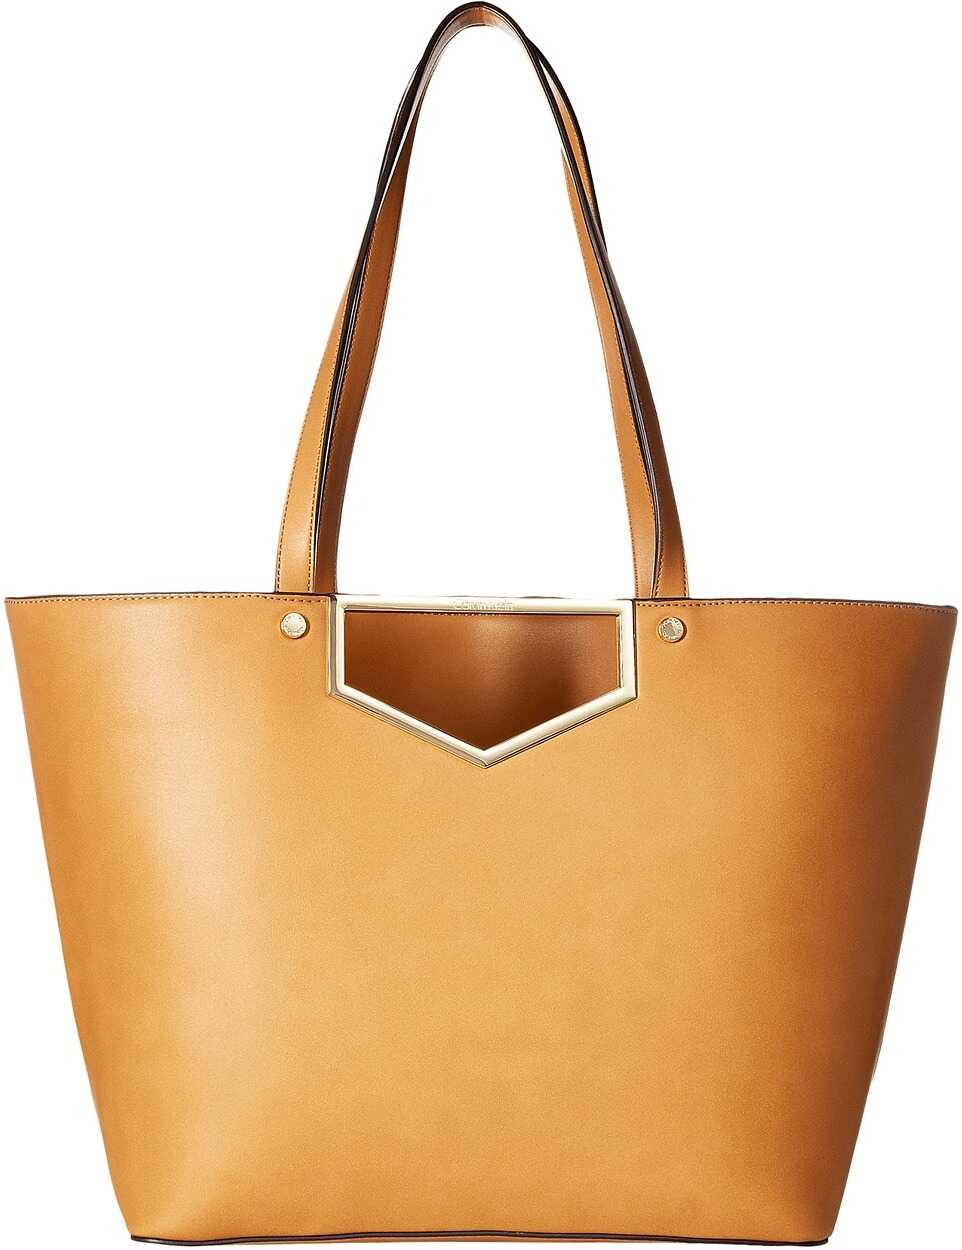 Calvin Klein Novelty Cut Out Hardware Tote Cashew